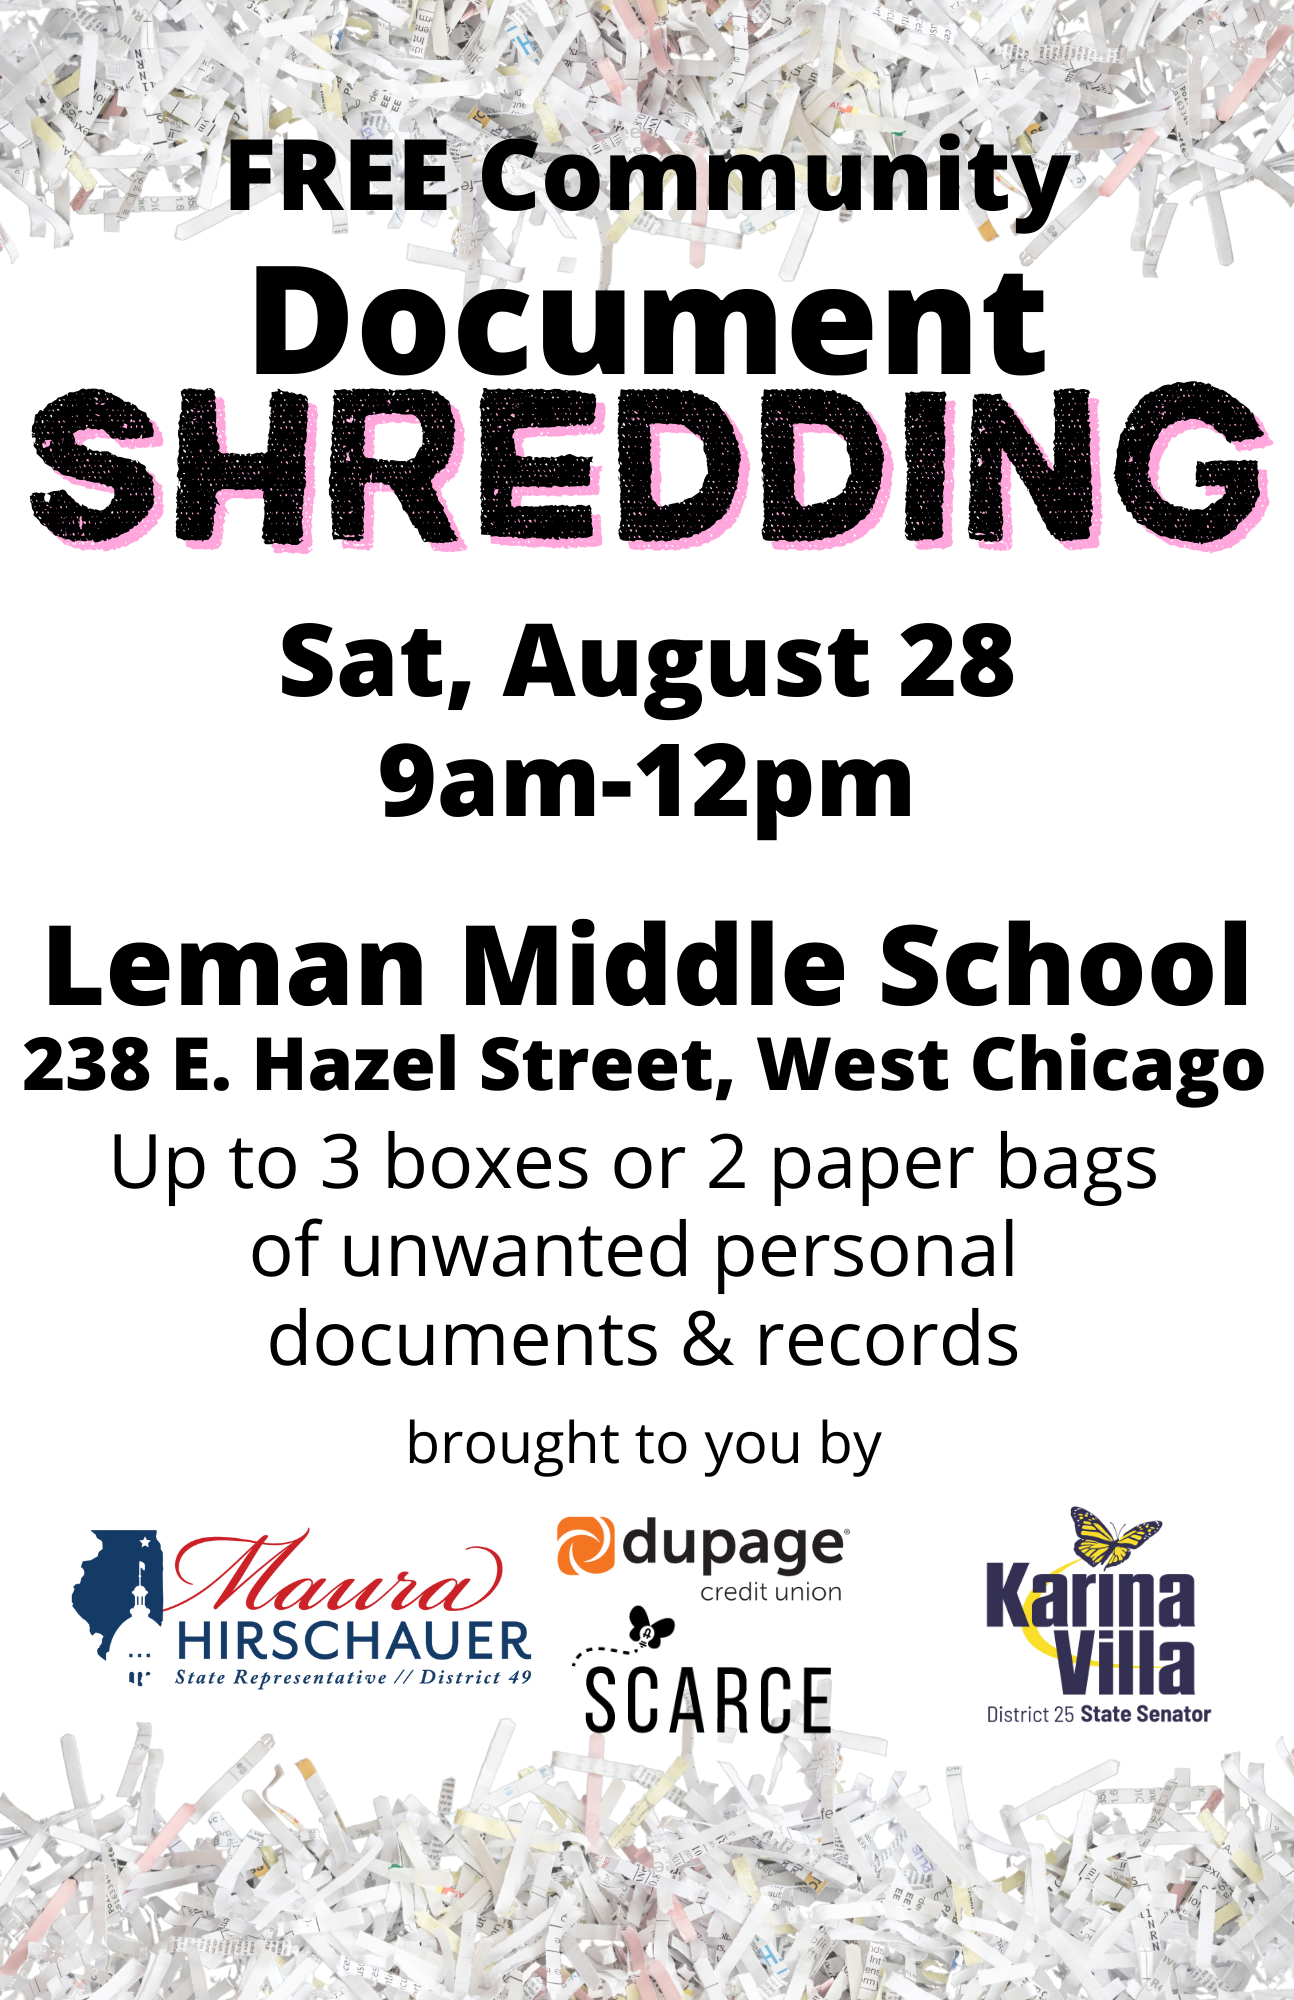 """Flyer- shredded papers at top and bottom borders. Text says """"Free Community Document Shredding, Saturday August 28 9am-12pm, Leman Middle School, 238 E Hazel St, West Chicago IL 60185. Shred unwanted personal documents & records. Brought to you by"""" with logos for State Representative Maura Hirschauer, DuPage Credit Union, S.C.A.R.C.E., State Senator Karina Villa."""